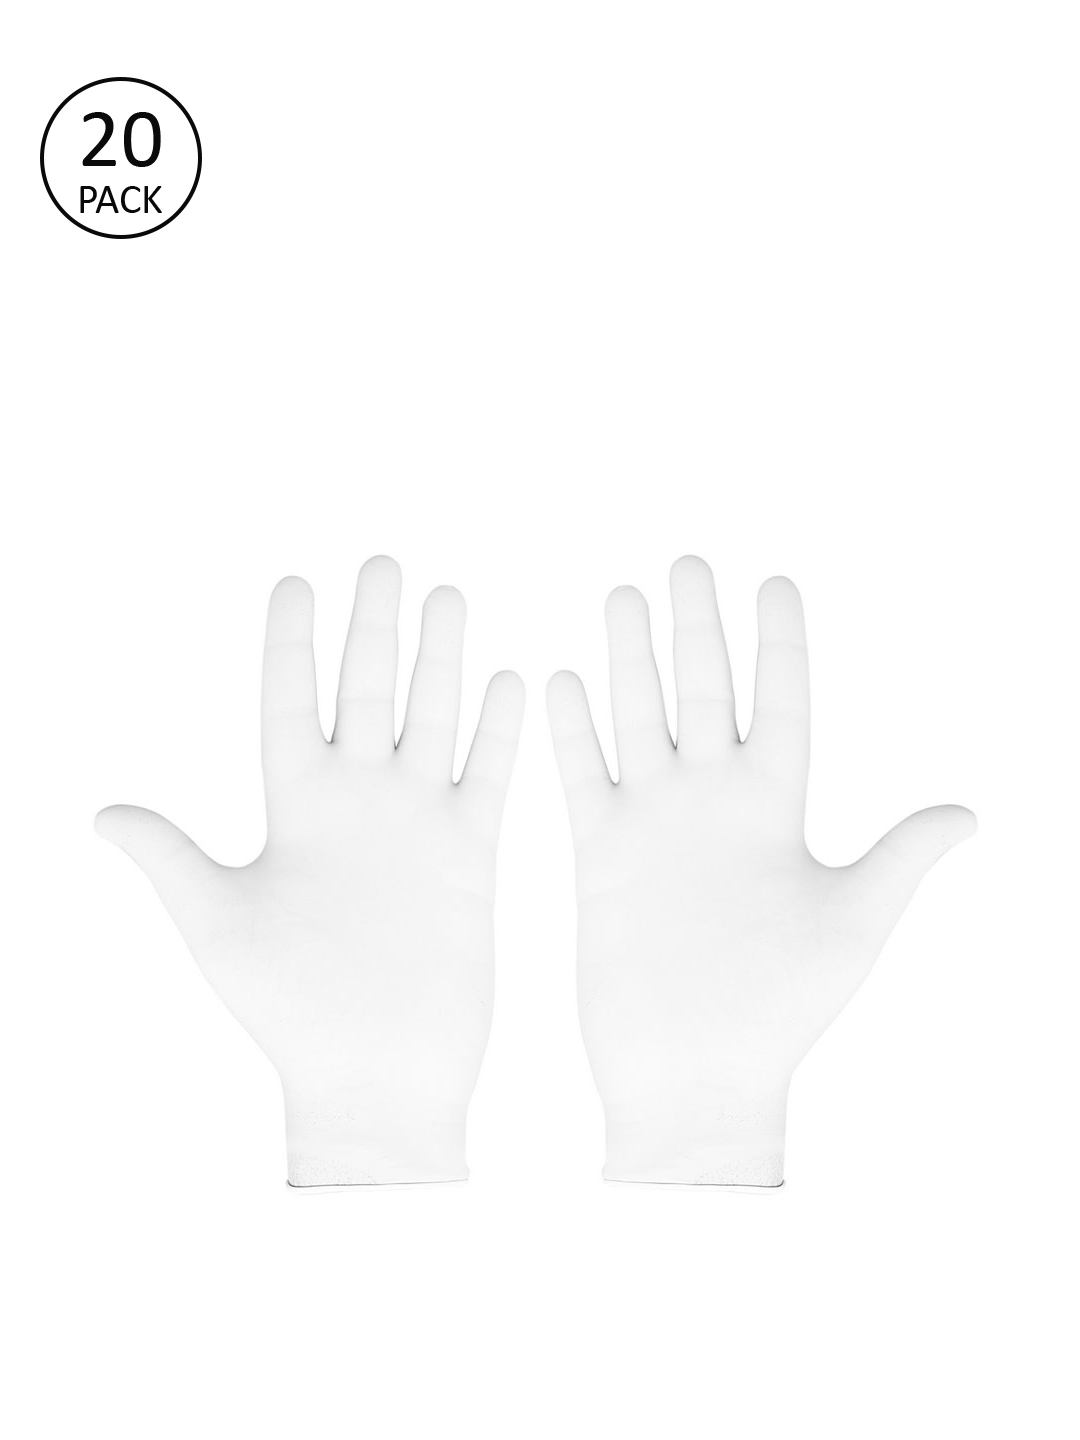 LONDON FASHION hob Unisex Pack Of 20 White Solid Surgical Disposable Hand Gloves